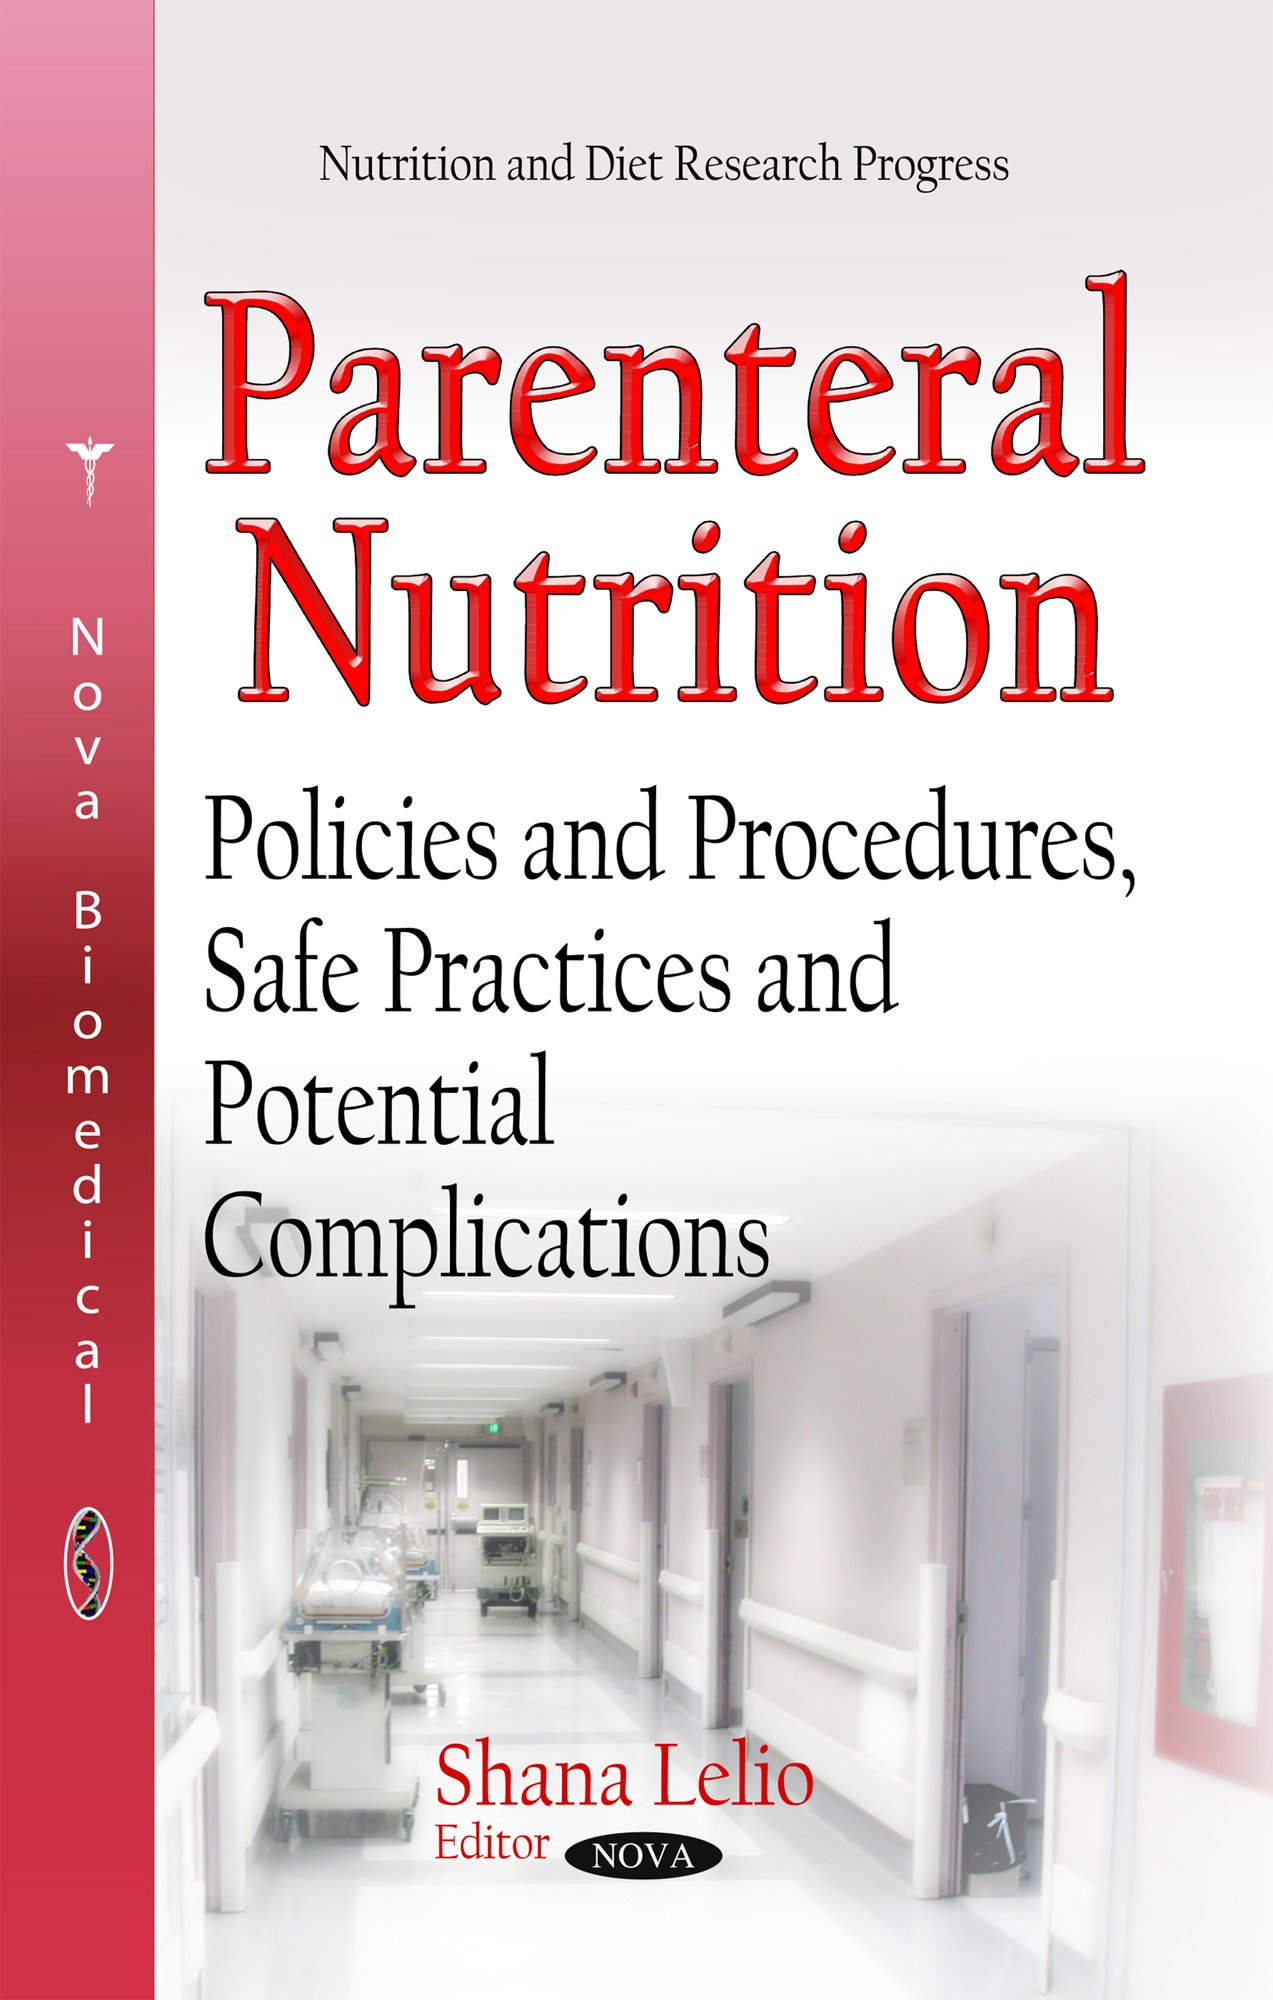 Parenteral Nutrition: Policies and Procedures, Safe Practices and Potential Complications (Nutrition and Diet Research Progress)